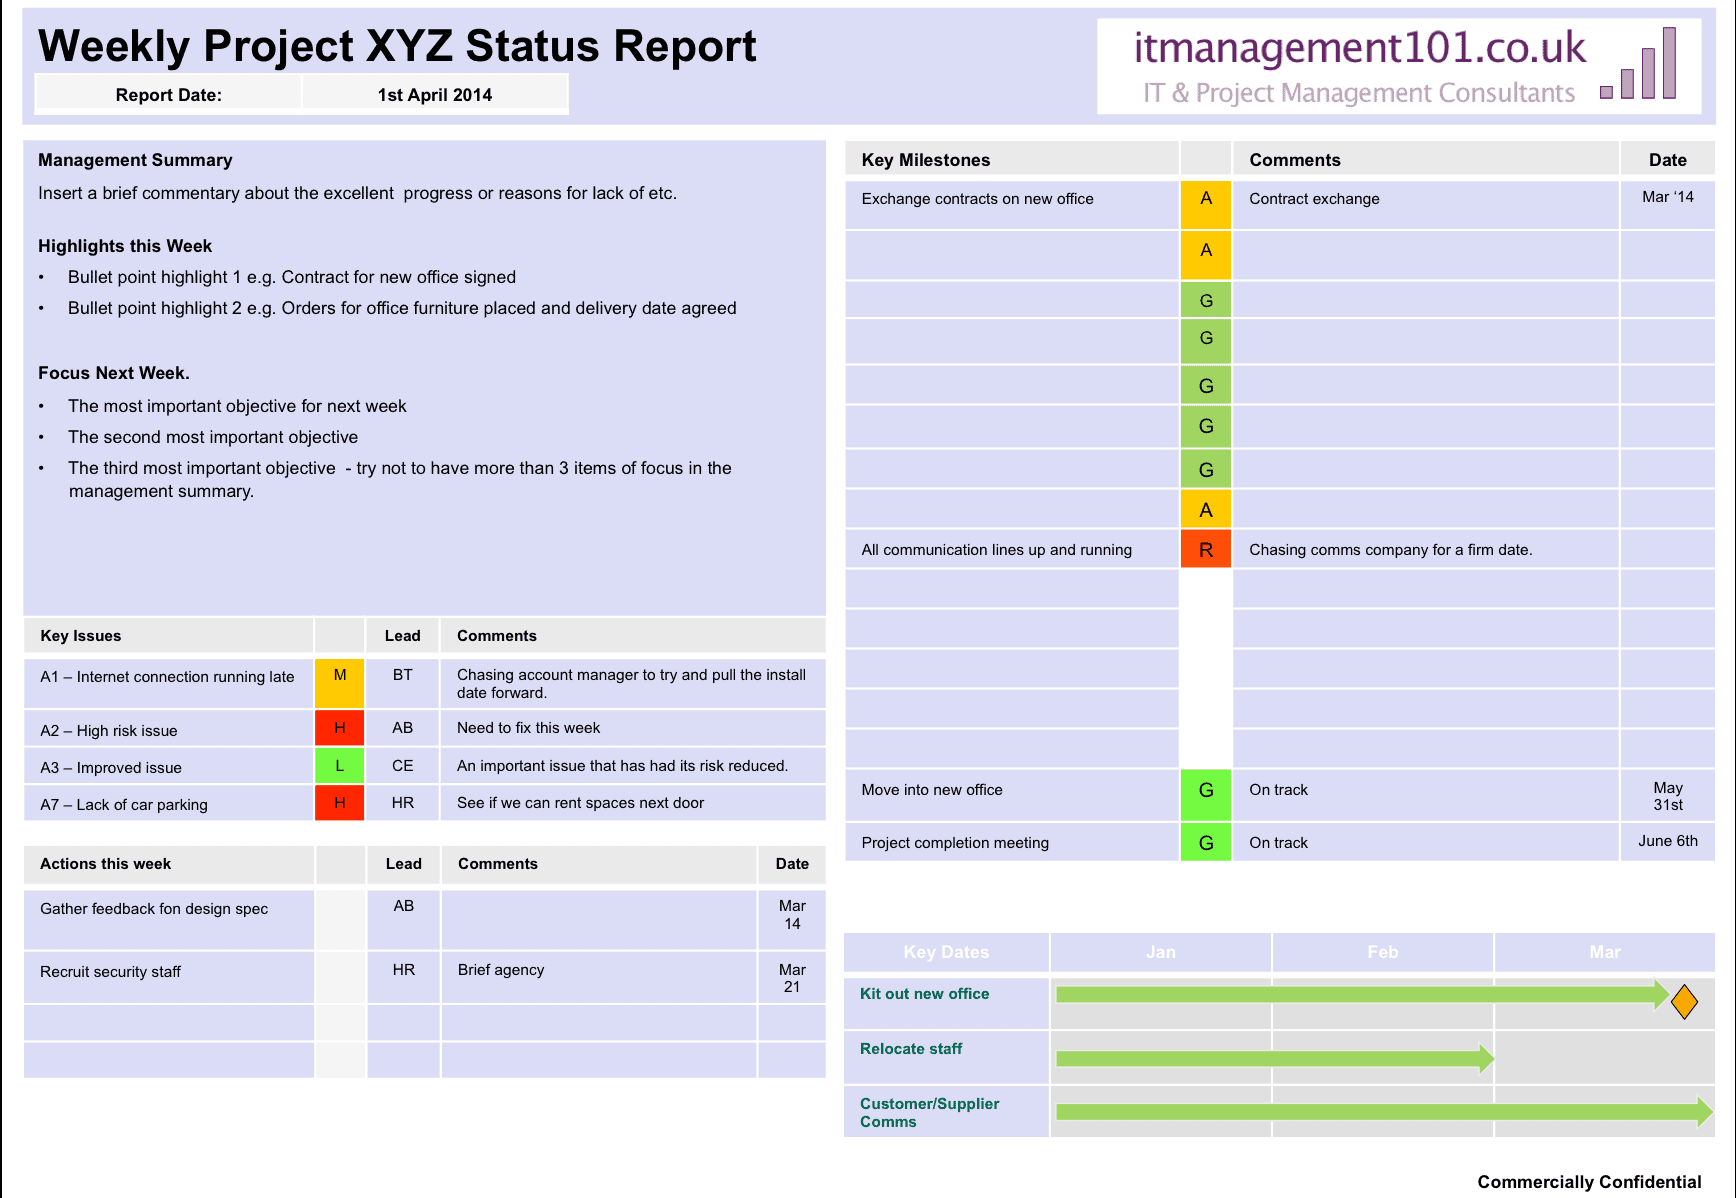 executive summary project status report template - project summary on a page status template single page report